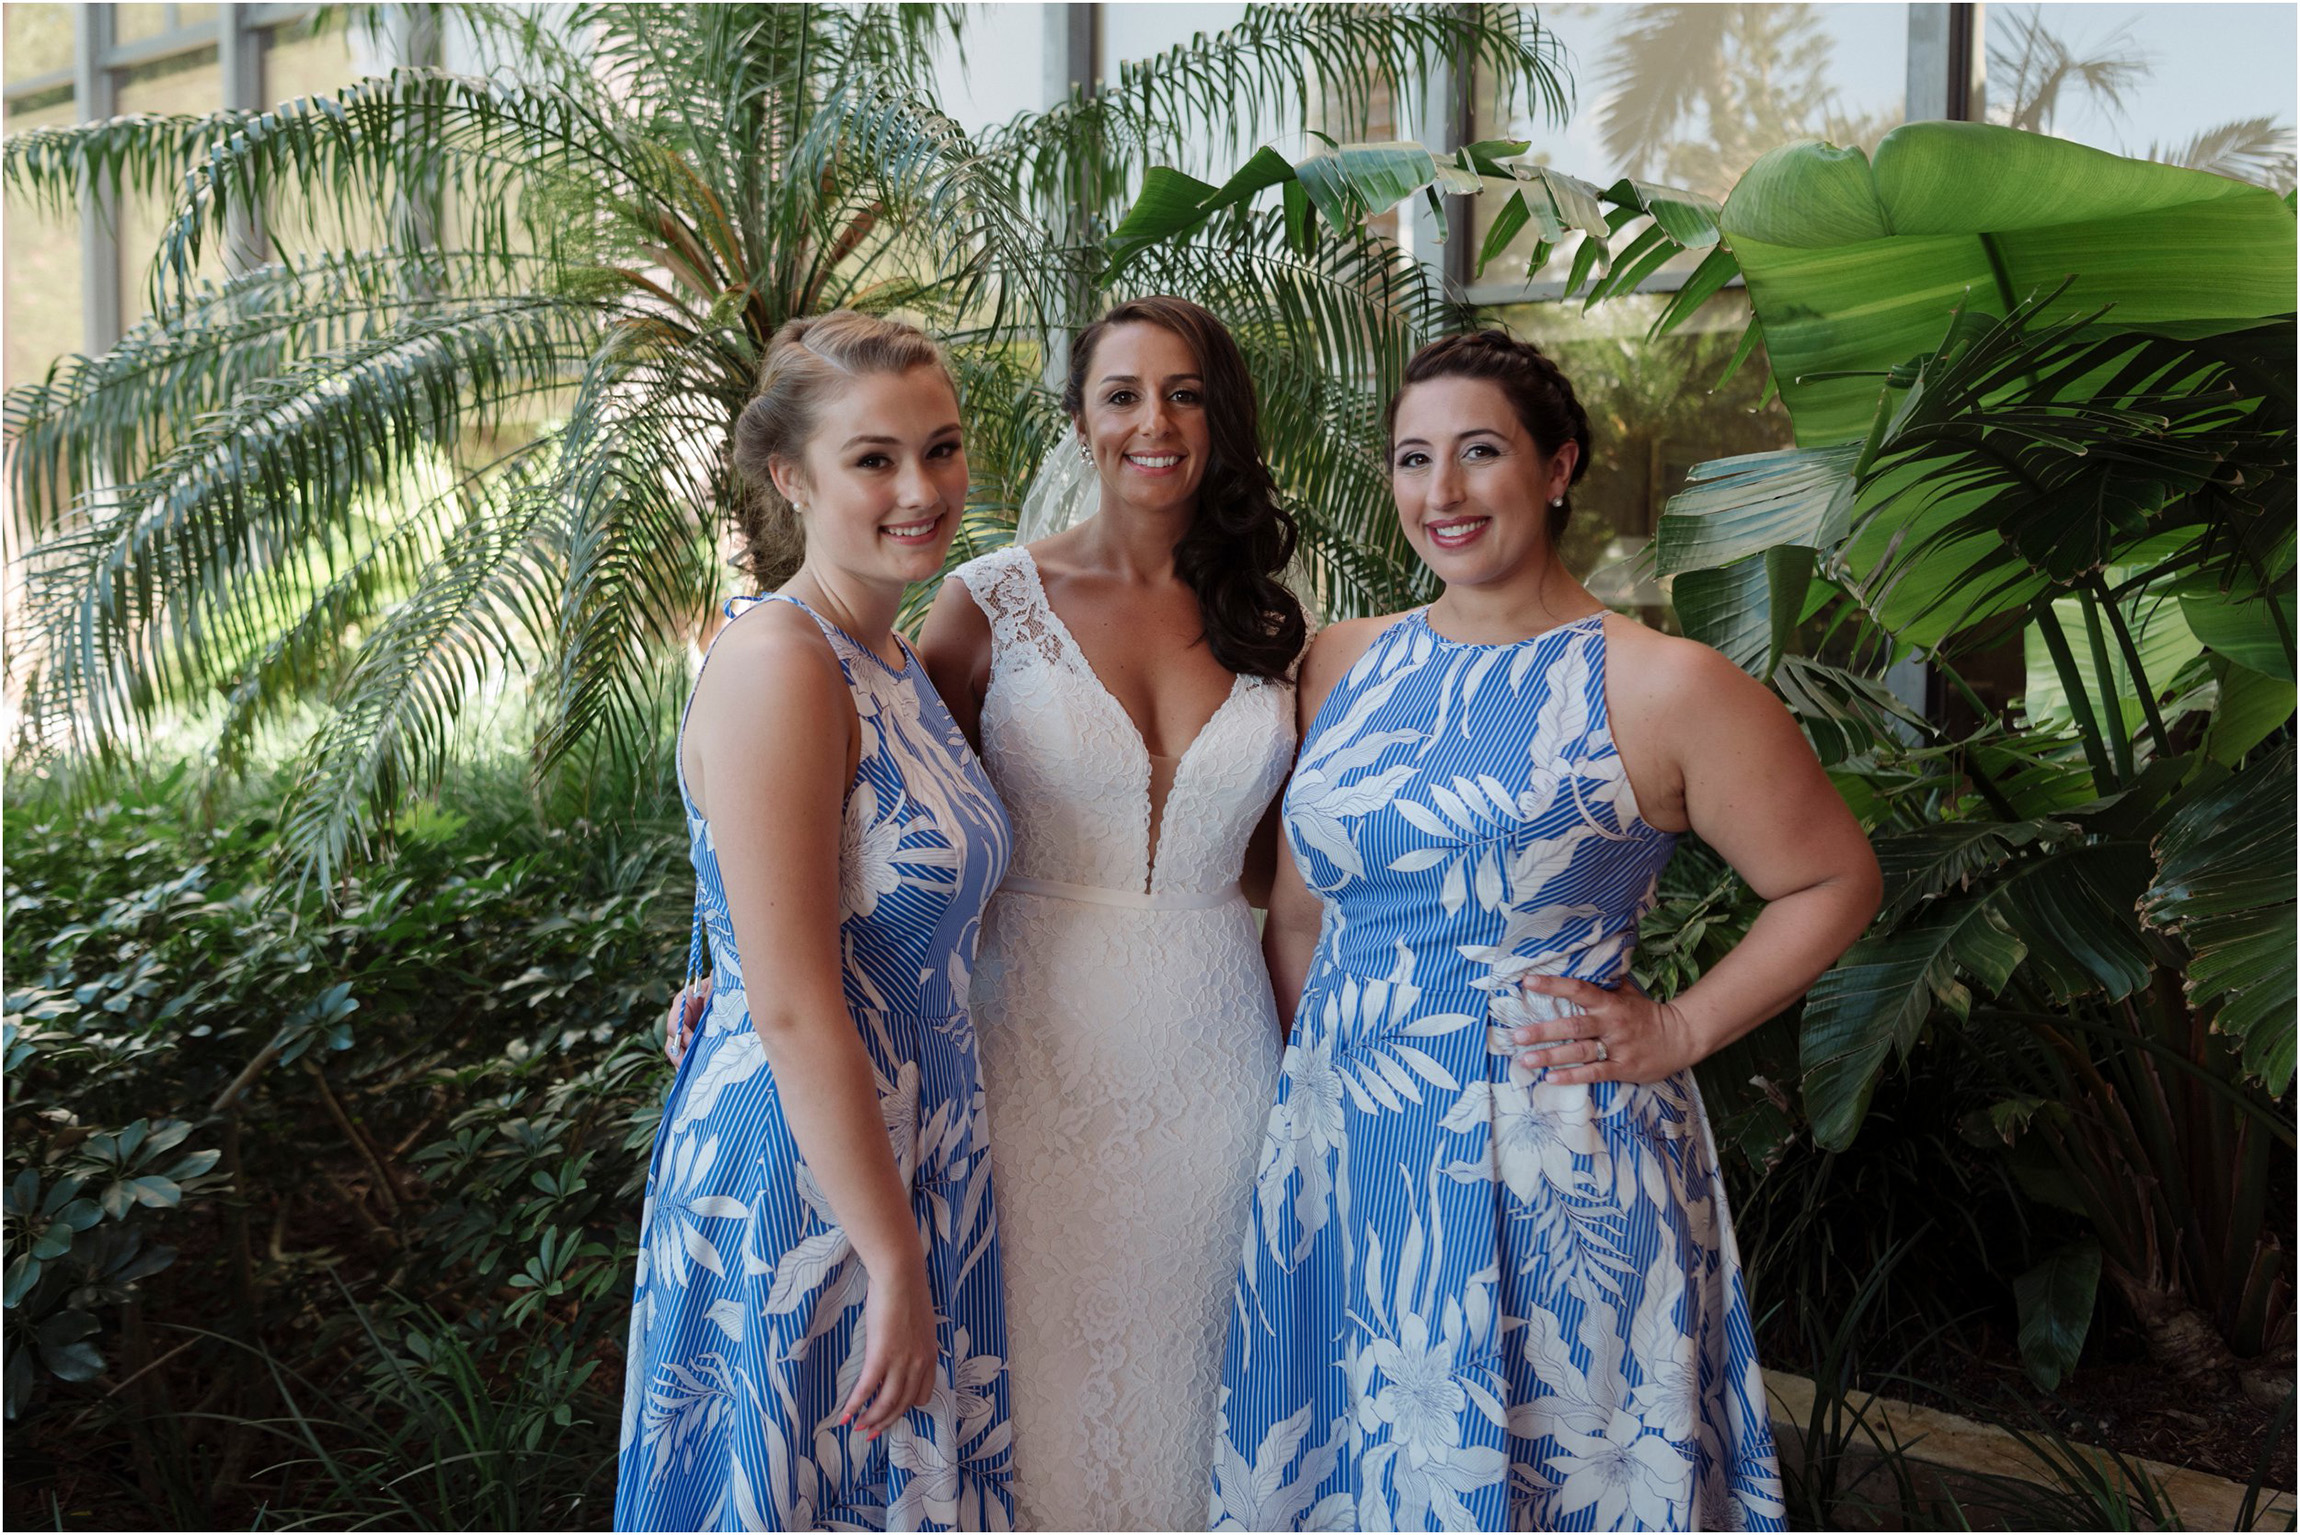 ©FianderFoto_Bermuda Wedding Photographer_Fairmont Southampton_Wedding_Anna_Thomas_020.jpg